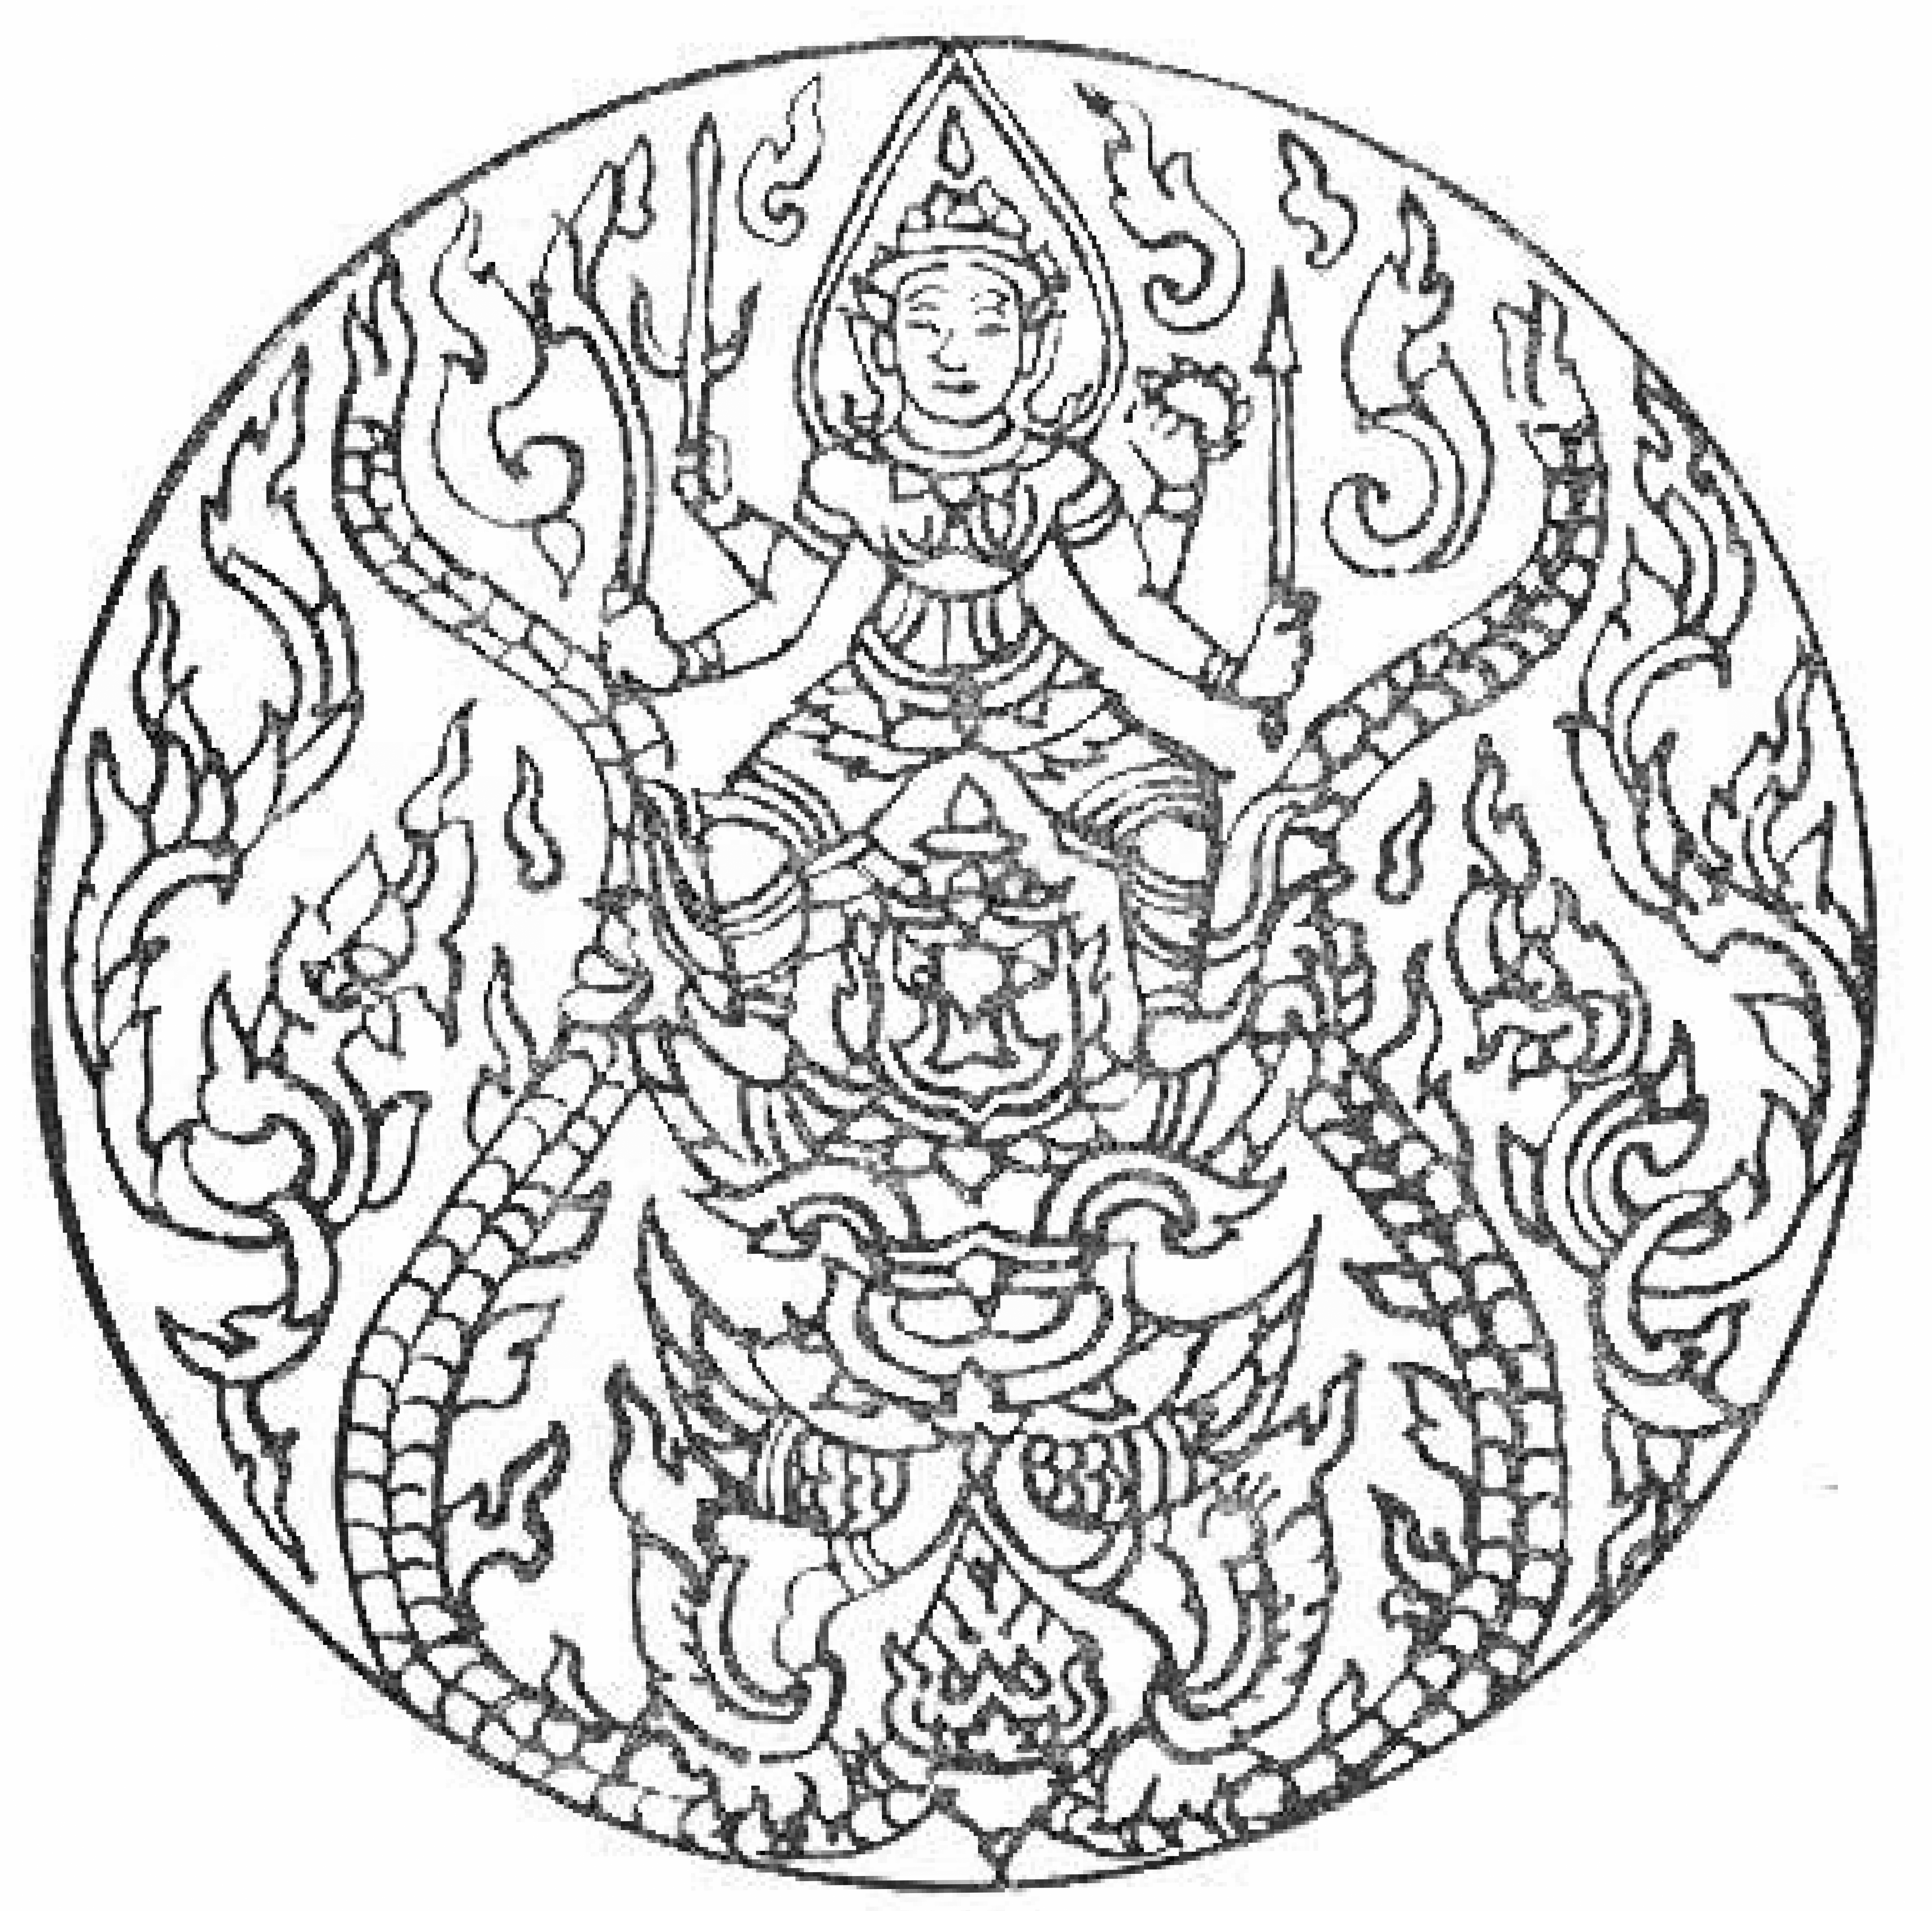 mandala coloring pages for adults free mandala butterflies and flowers malas adult coloring pages adults for coloring pages free mandala